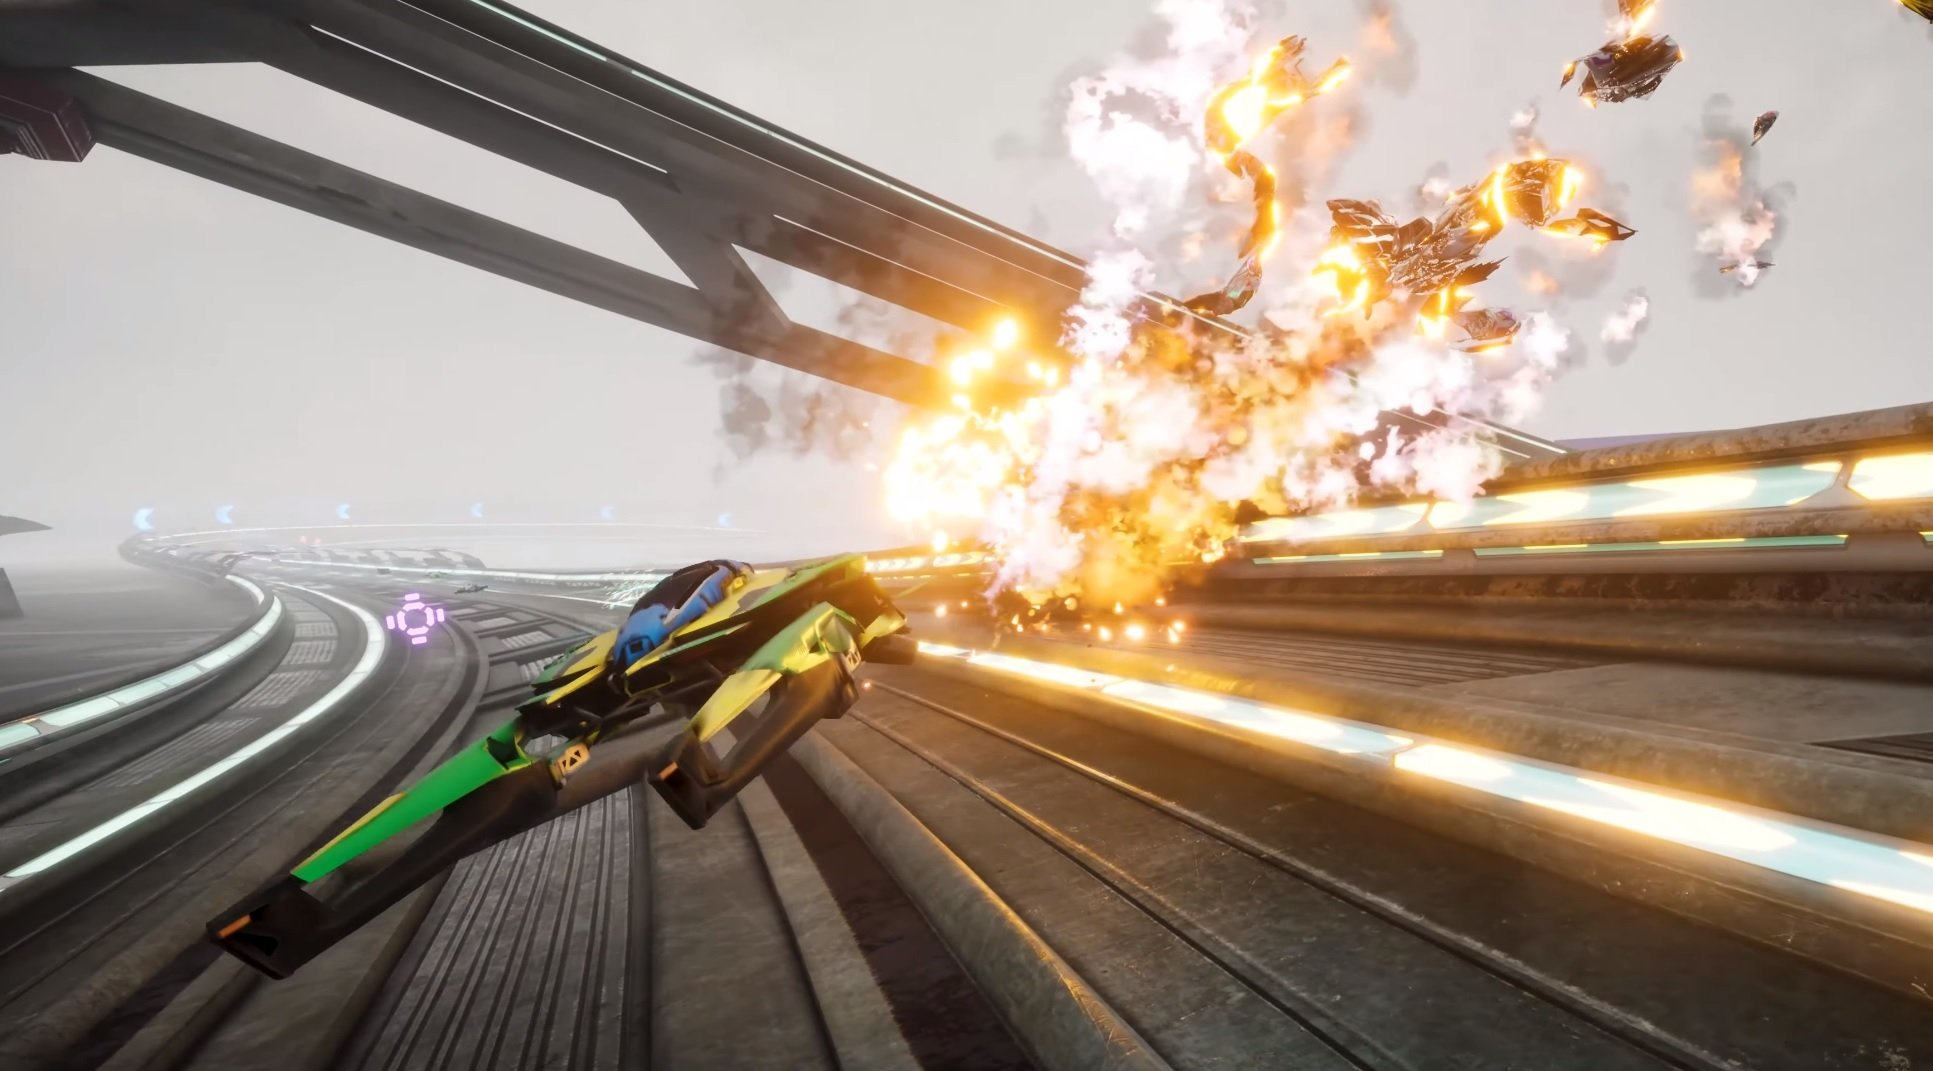 Another WipEout-looking futuristic racer is coming next month screenshot